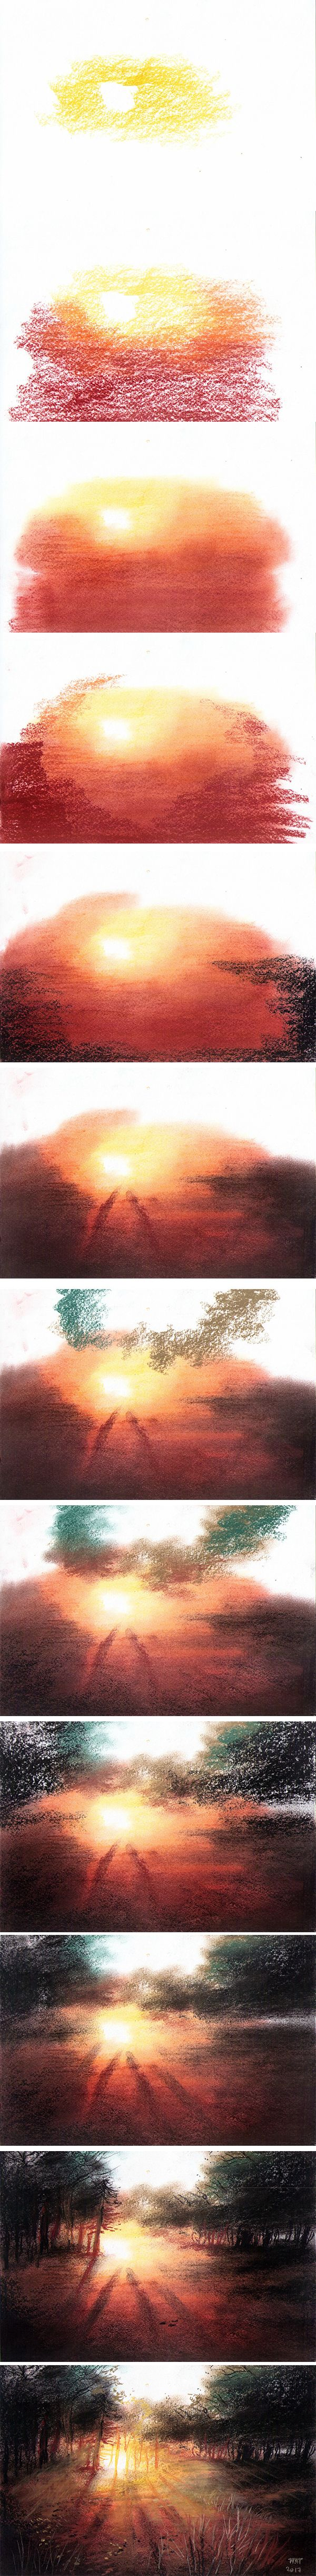 Blending pastels step by step sunset pastel painting.